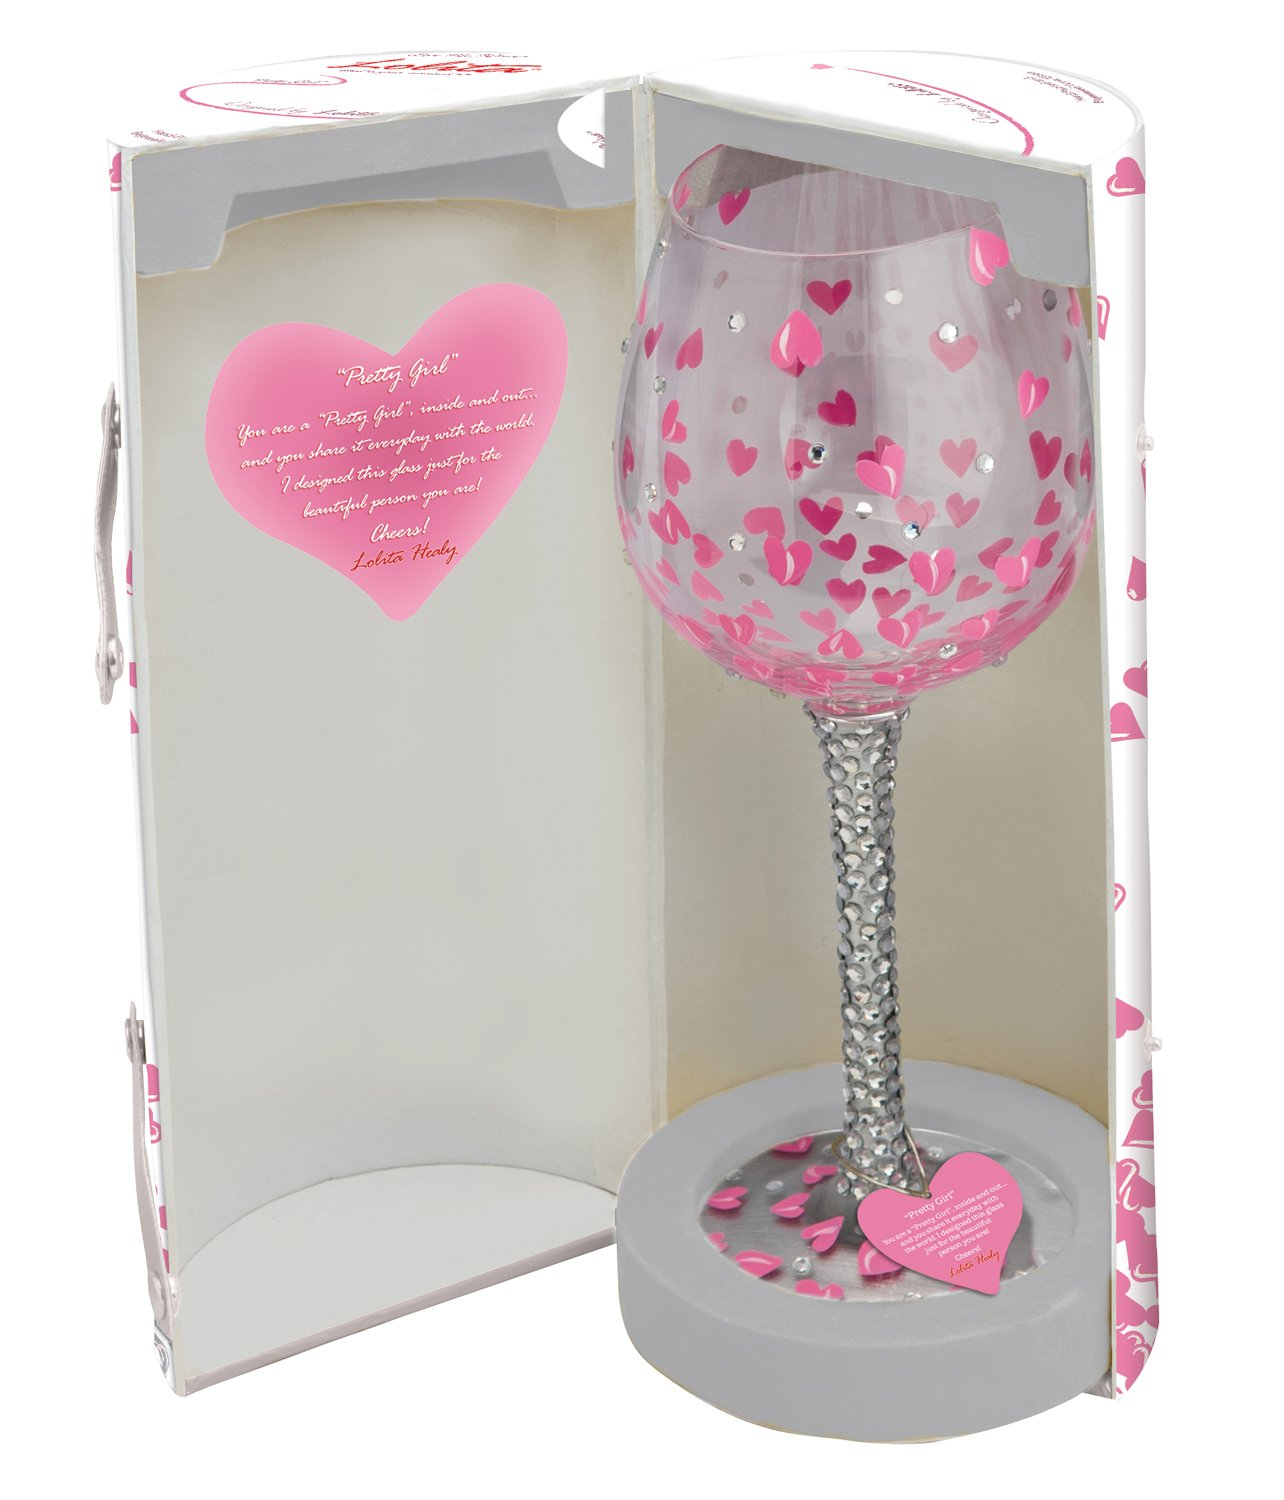 Lolita Super Bling Collection Pretty Girl Wine Glass